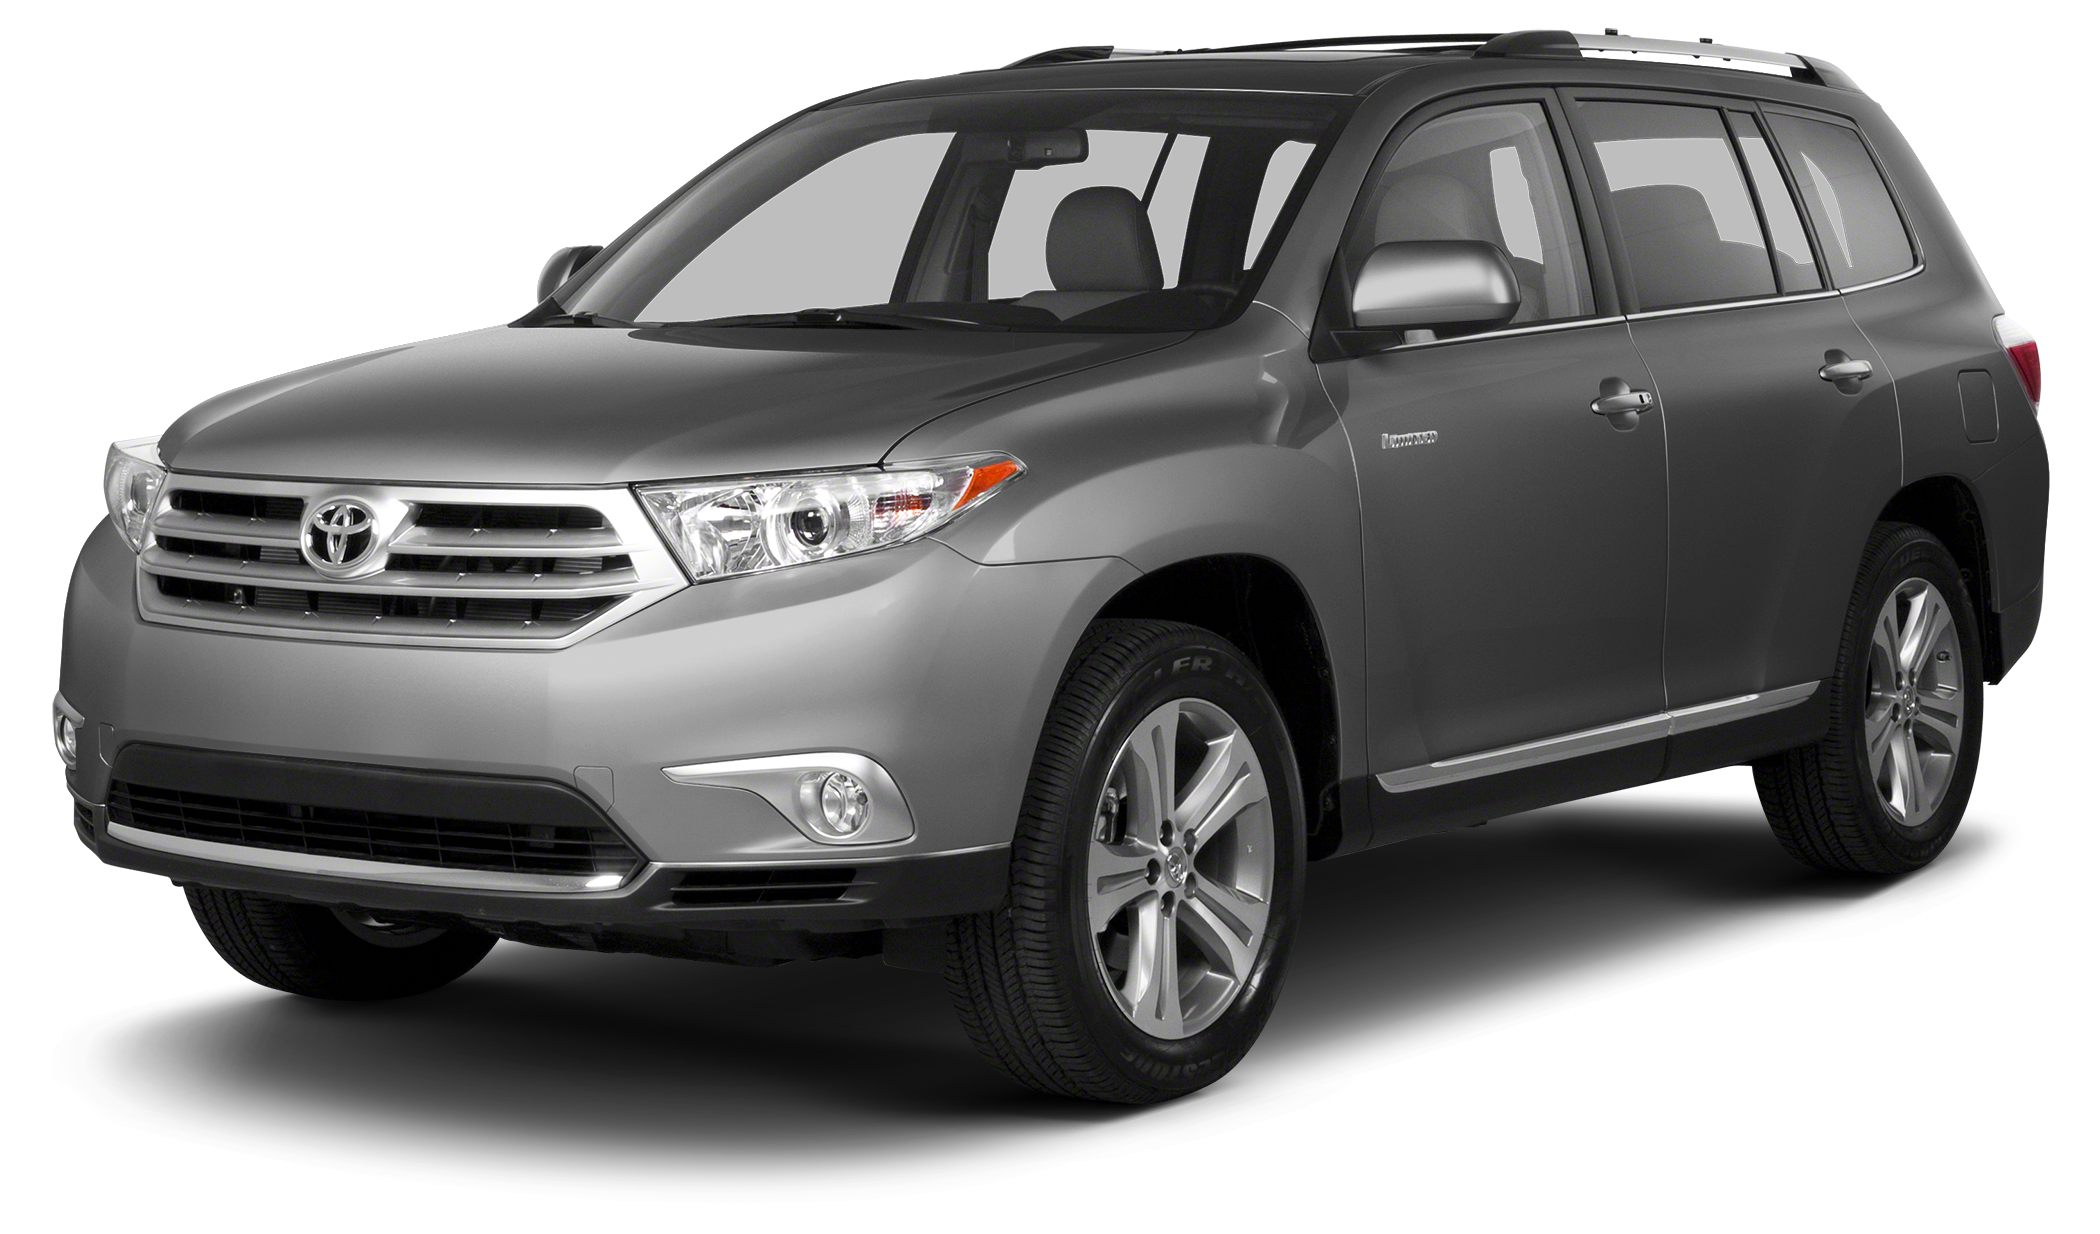 2013 Toyota Highlander Base Plus PRICED TO MOVE 1000 below Kelley Blue Book CARFAX 1-Owner LOW